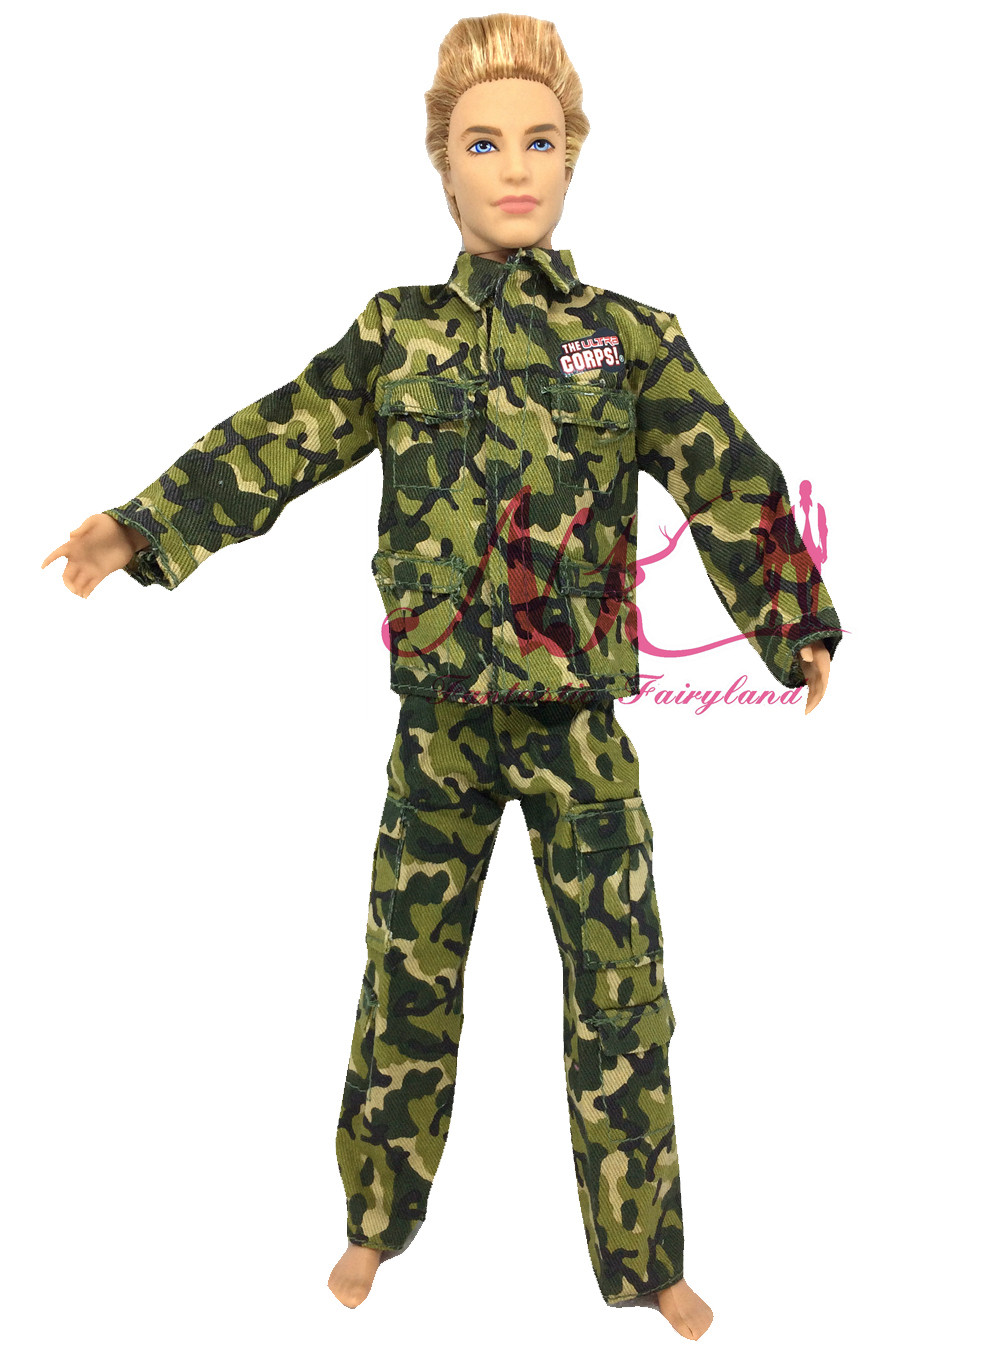 NK Original Doll Prince Clothes Army Combat Uniform Outfit For Barbie Boy Male  Ken Doll For Lanard  1/6 Soldier  Best Gift 001A